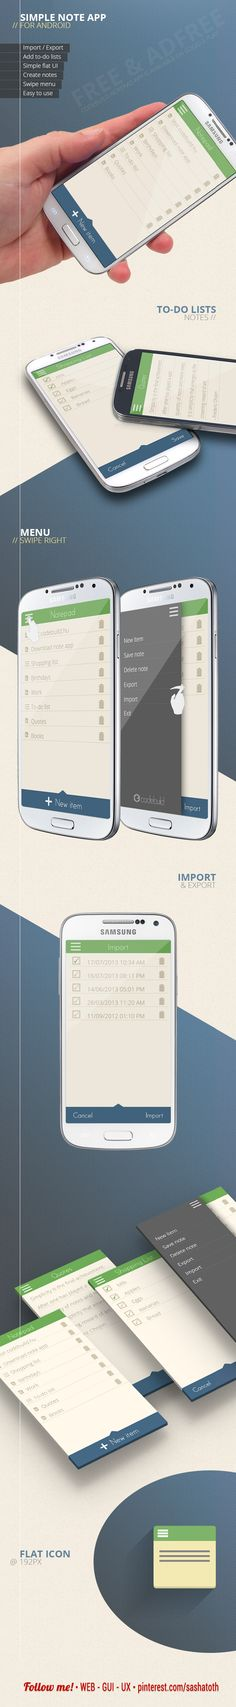 Codebuild Notepad app for Android by Codebuild, via Behance *** #app #android #gui #ui #behance